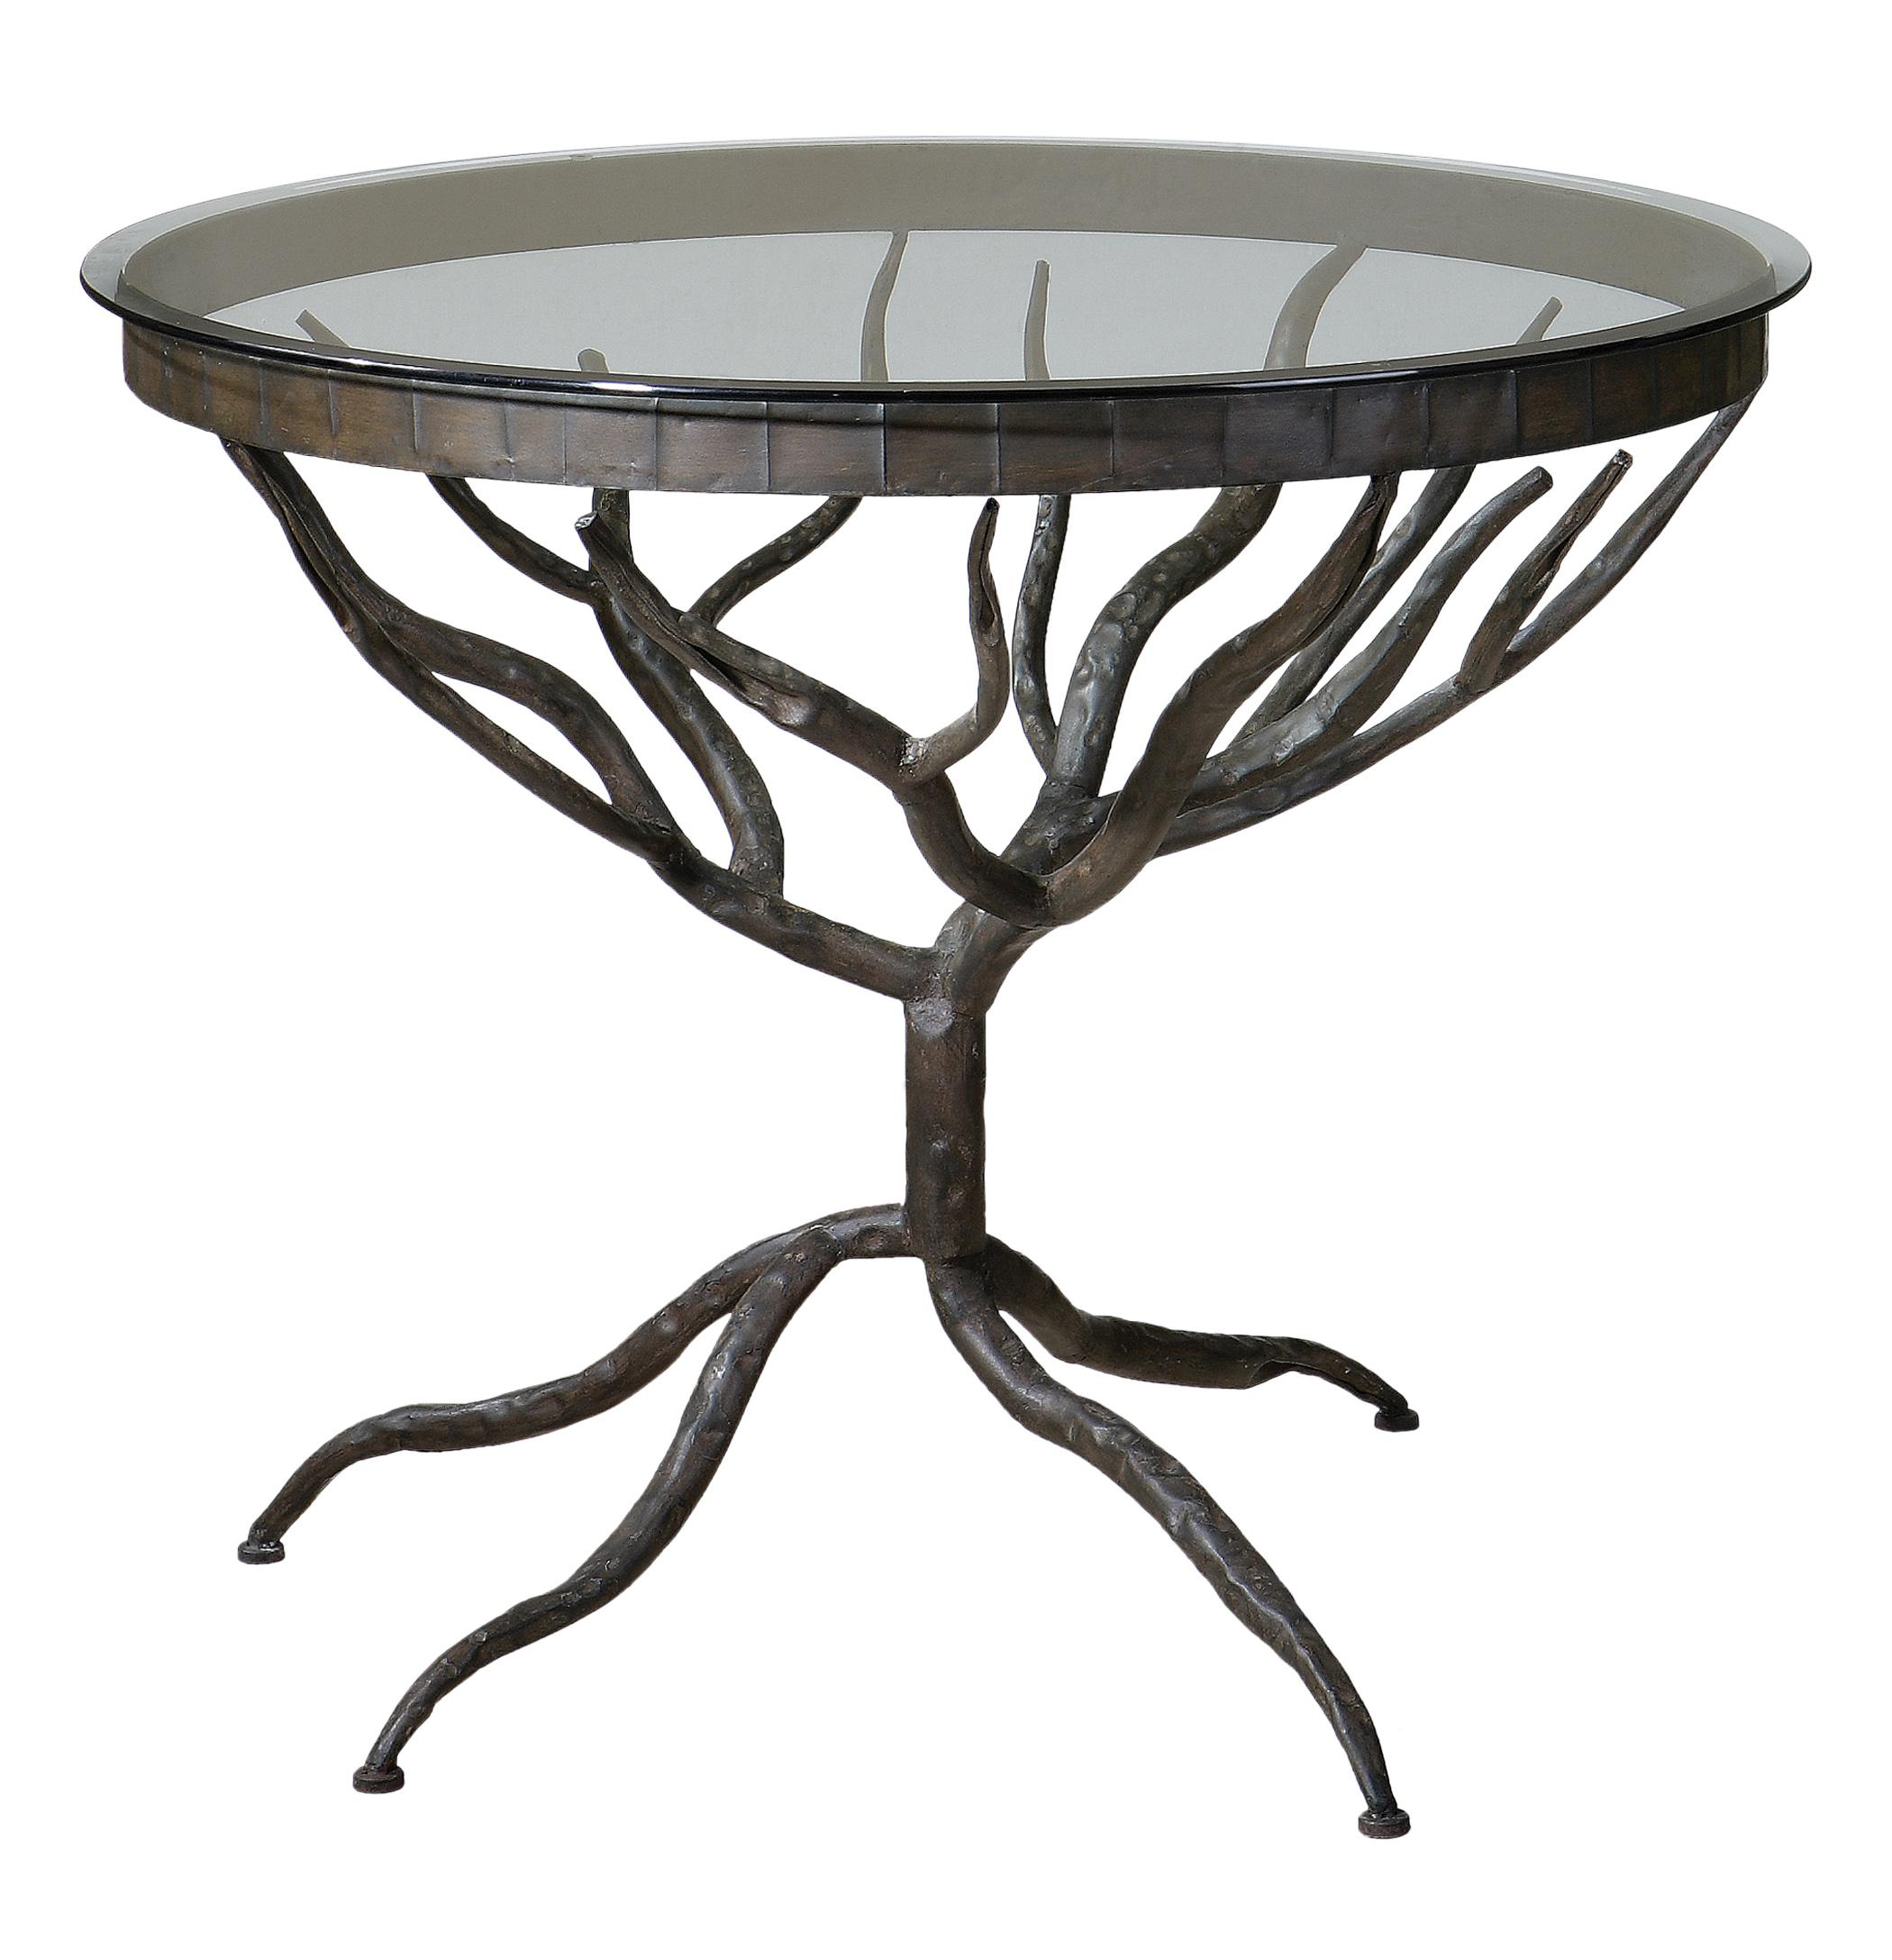 Uttermost Accent Furniture Esher Accent Table - Item Number: 24317